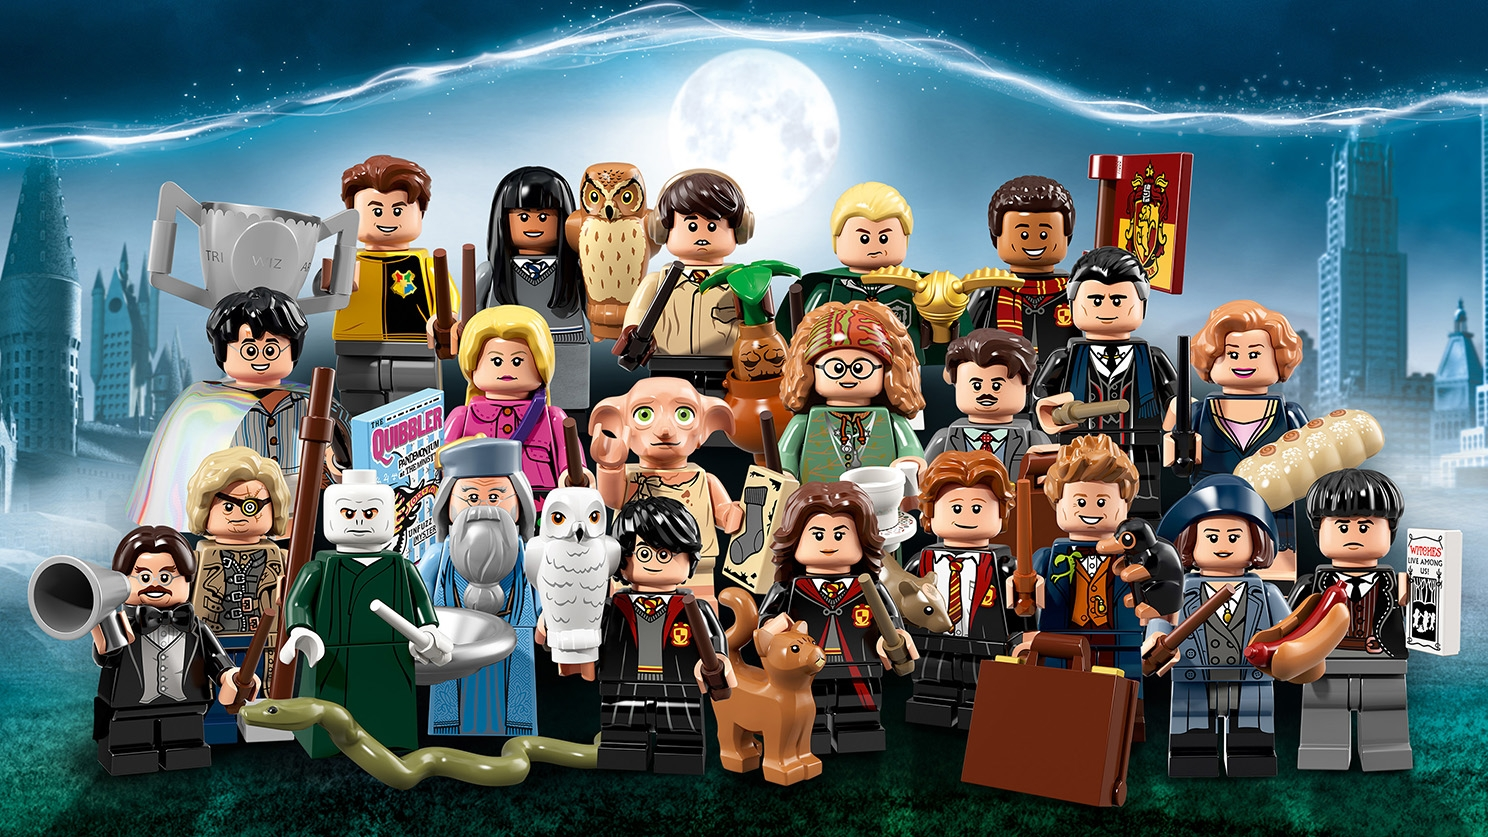 LEGO Minifigures - 71022 Harry Potter and Fantastic Beasts - Collect characters from the Harry Potter and Fantastic Beasts stories like Newt Scamander, Tina Goldstein, Albus Dumbledore and Harry Potter himself!